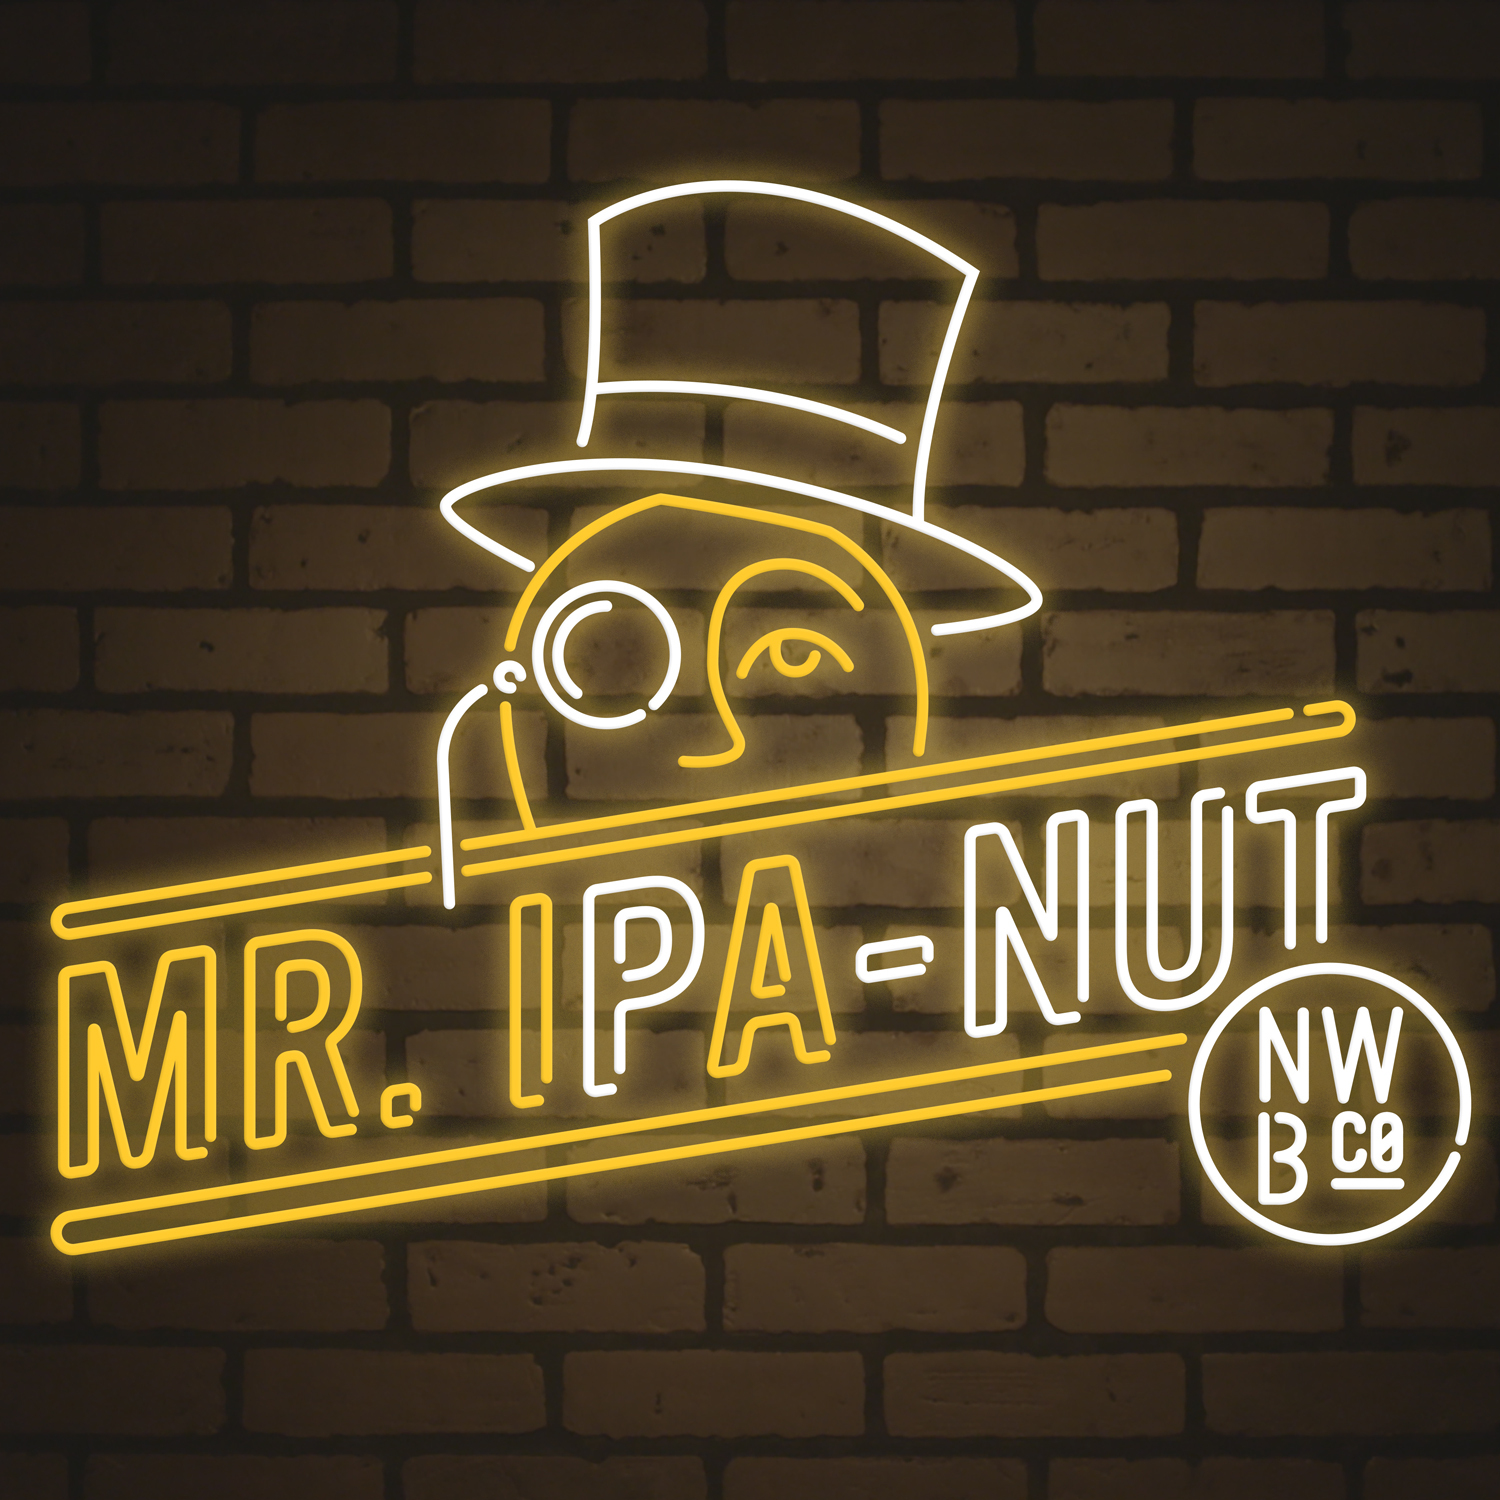 planters_mr_ipa_nut_mr_peanut_2